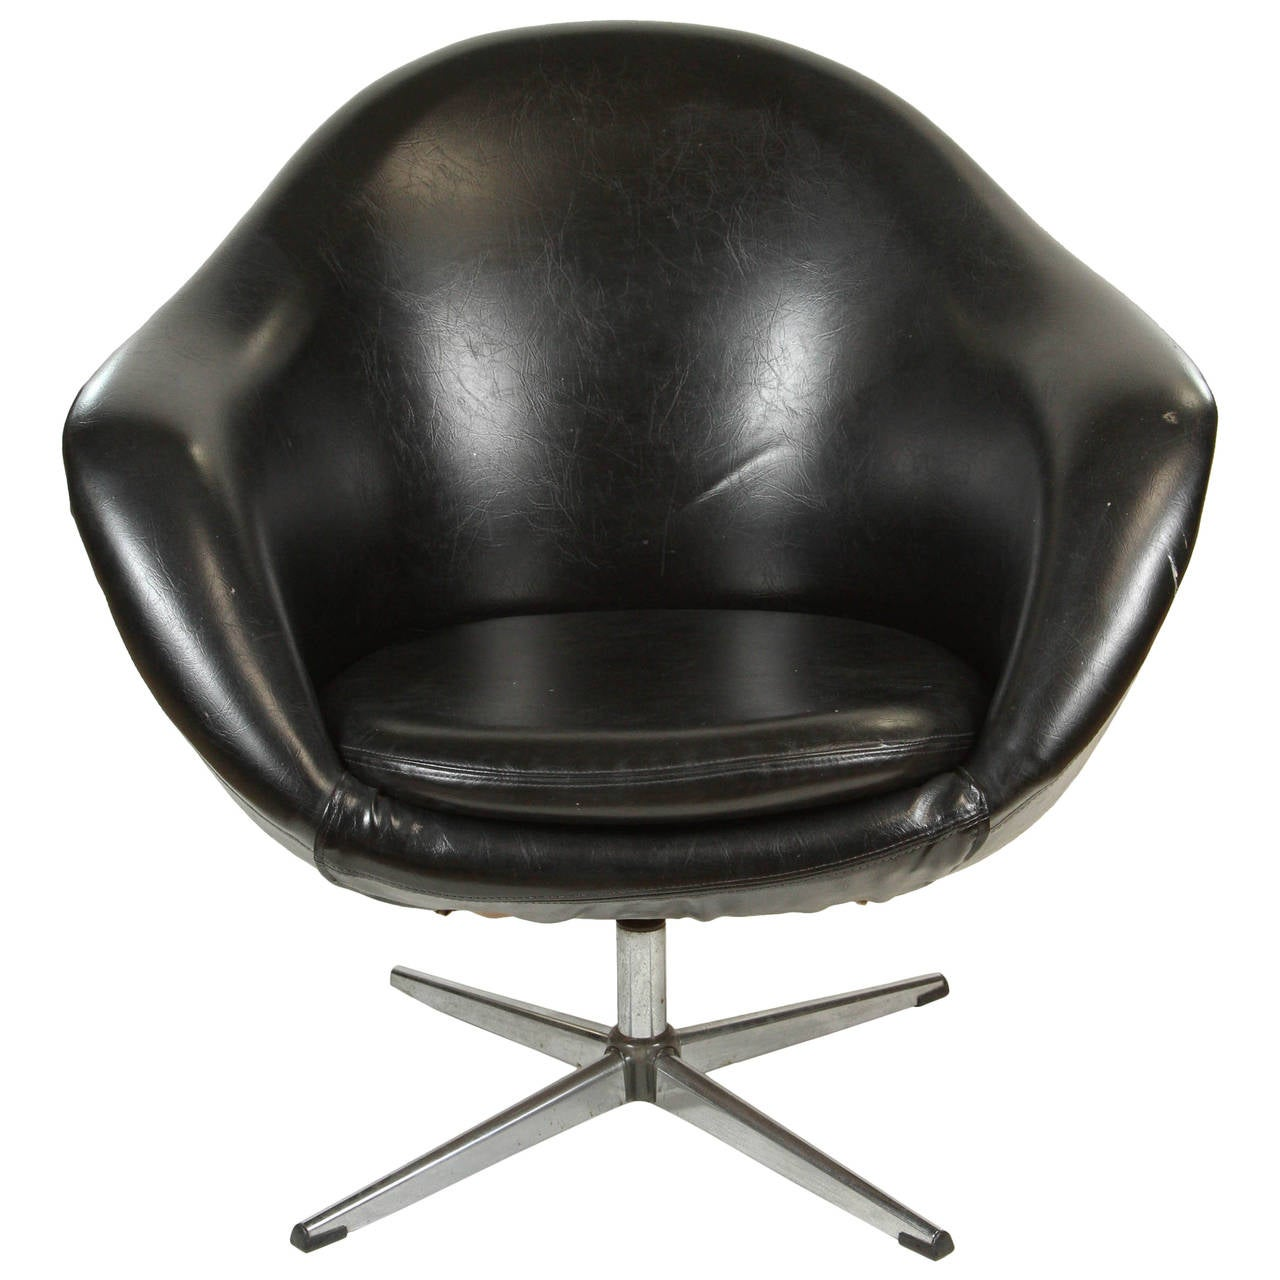 1960s Swivel Egg Chair In Black Vinyl At 1stdibs